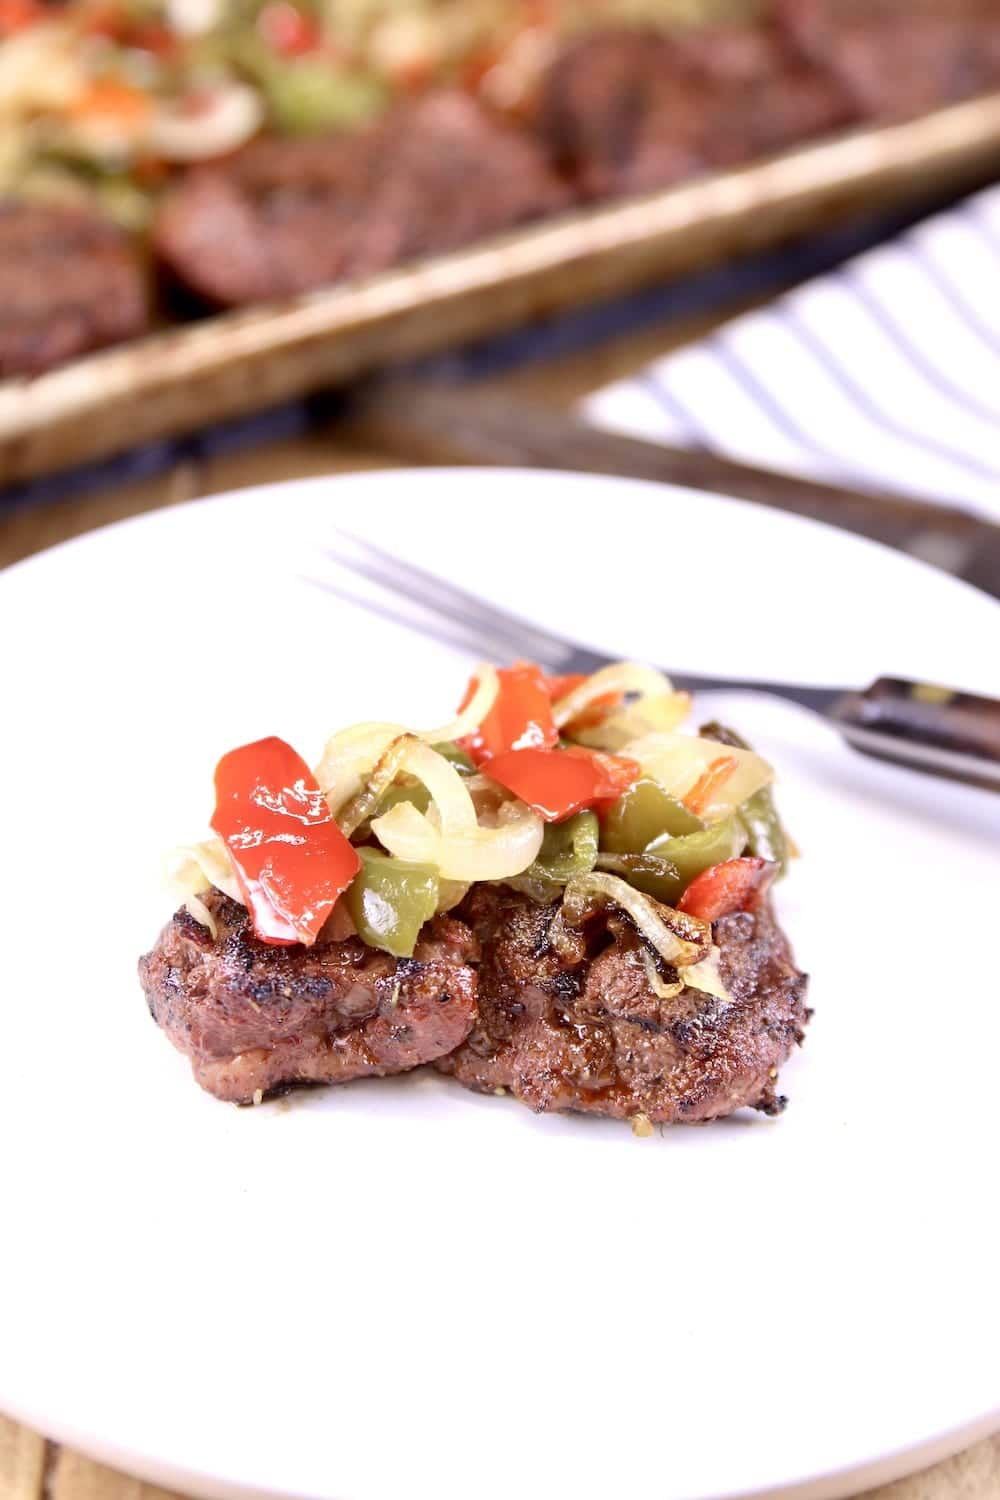 Grilled Filet Mignon Steak topped with peppers and onions